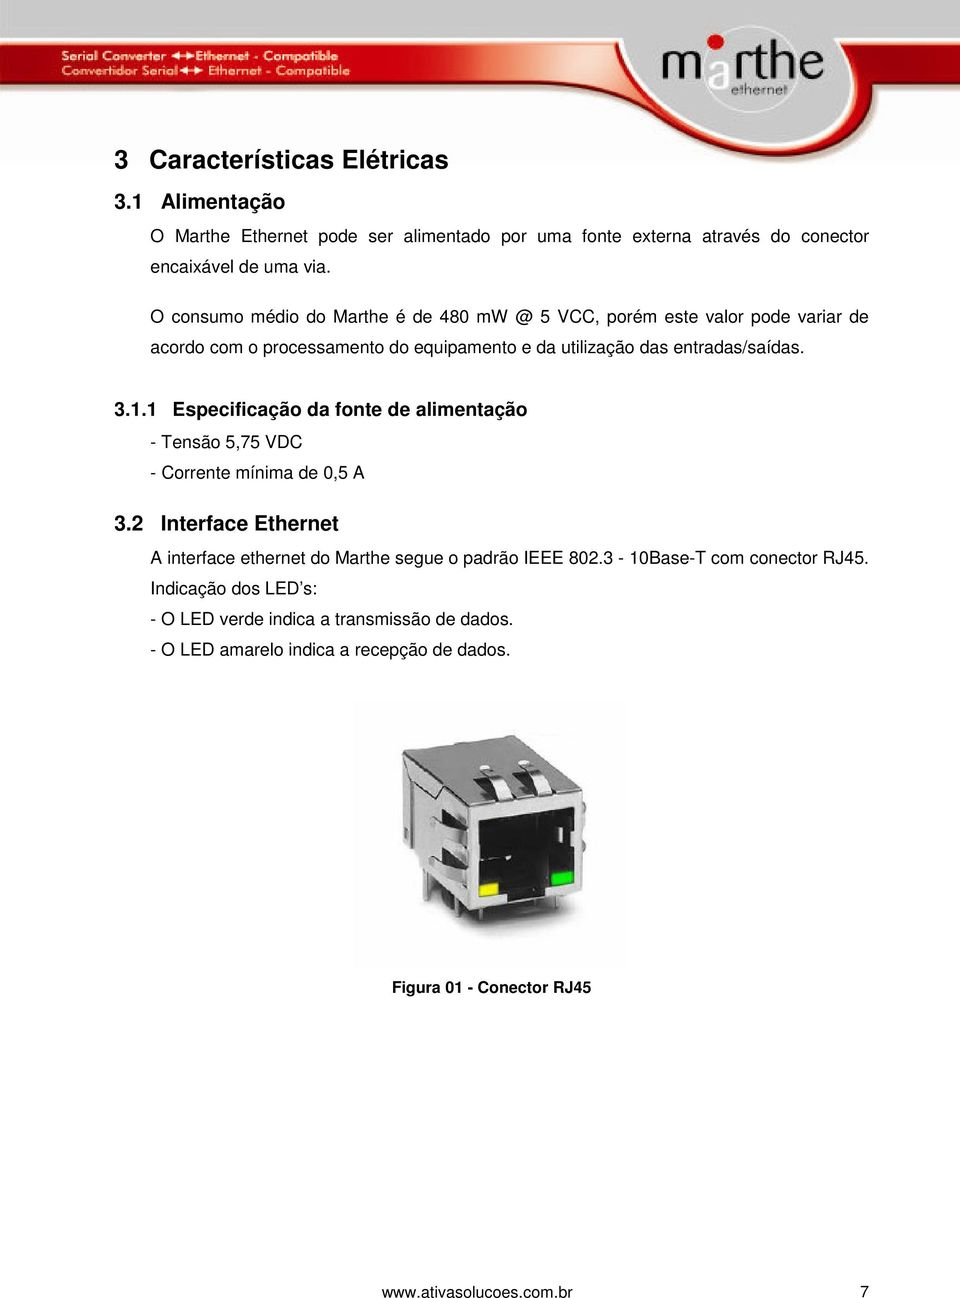 1 Especificação da fonte de alimentação - Tensão 5,75 VDC - Corrente mínima de 0,5 A 3.2 Interface Ethernet A interface ethernet do Marthe segue o padrão IEEE 802.